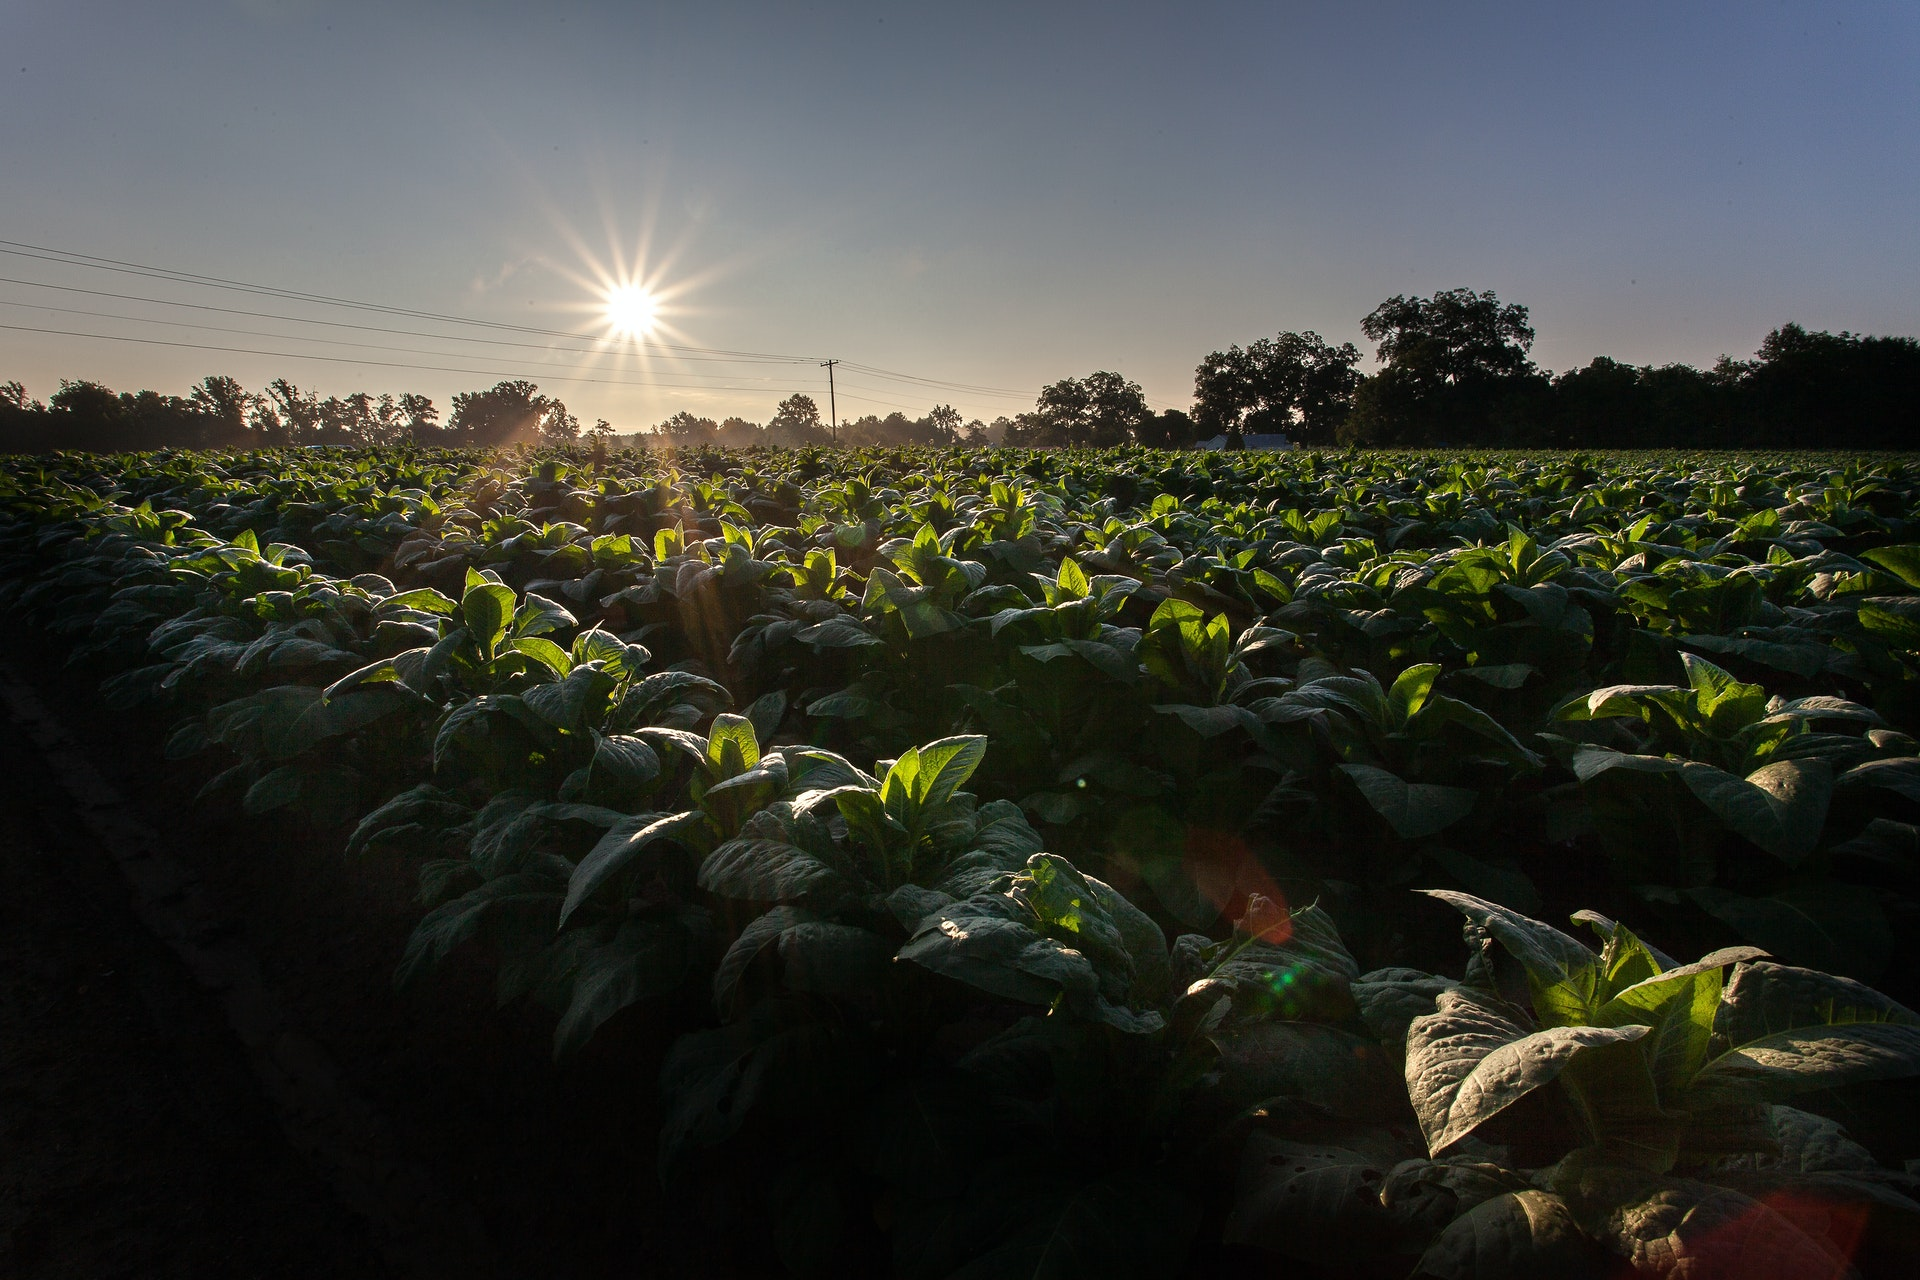 Photo of vegetables being grown on a farm.